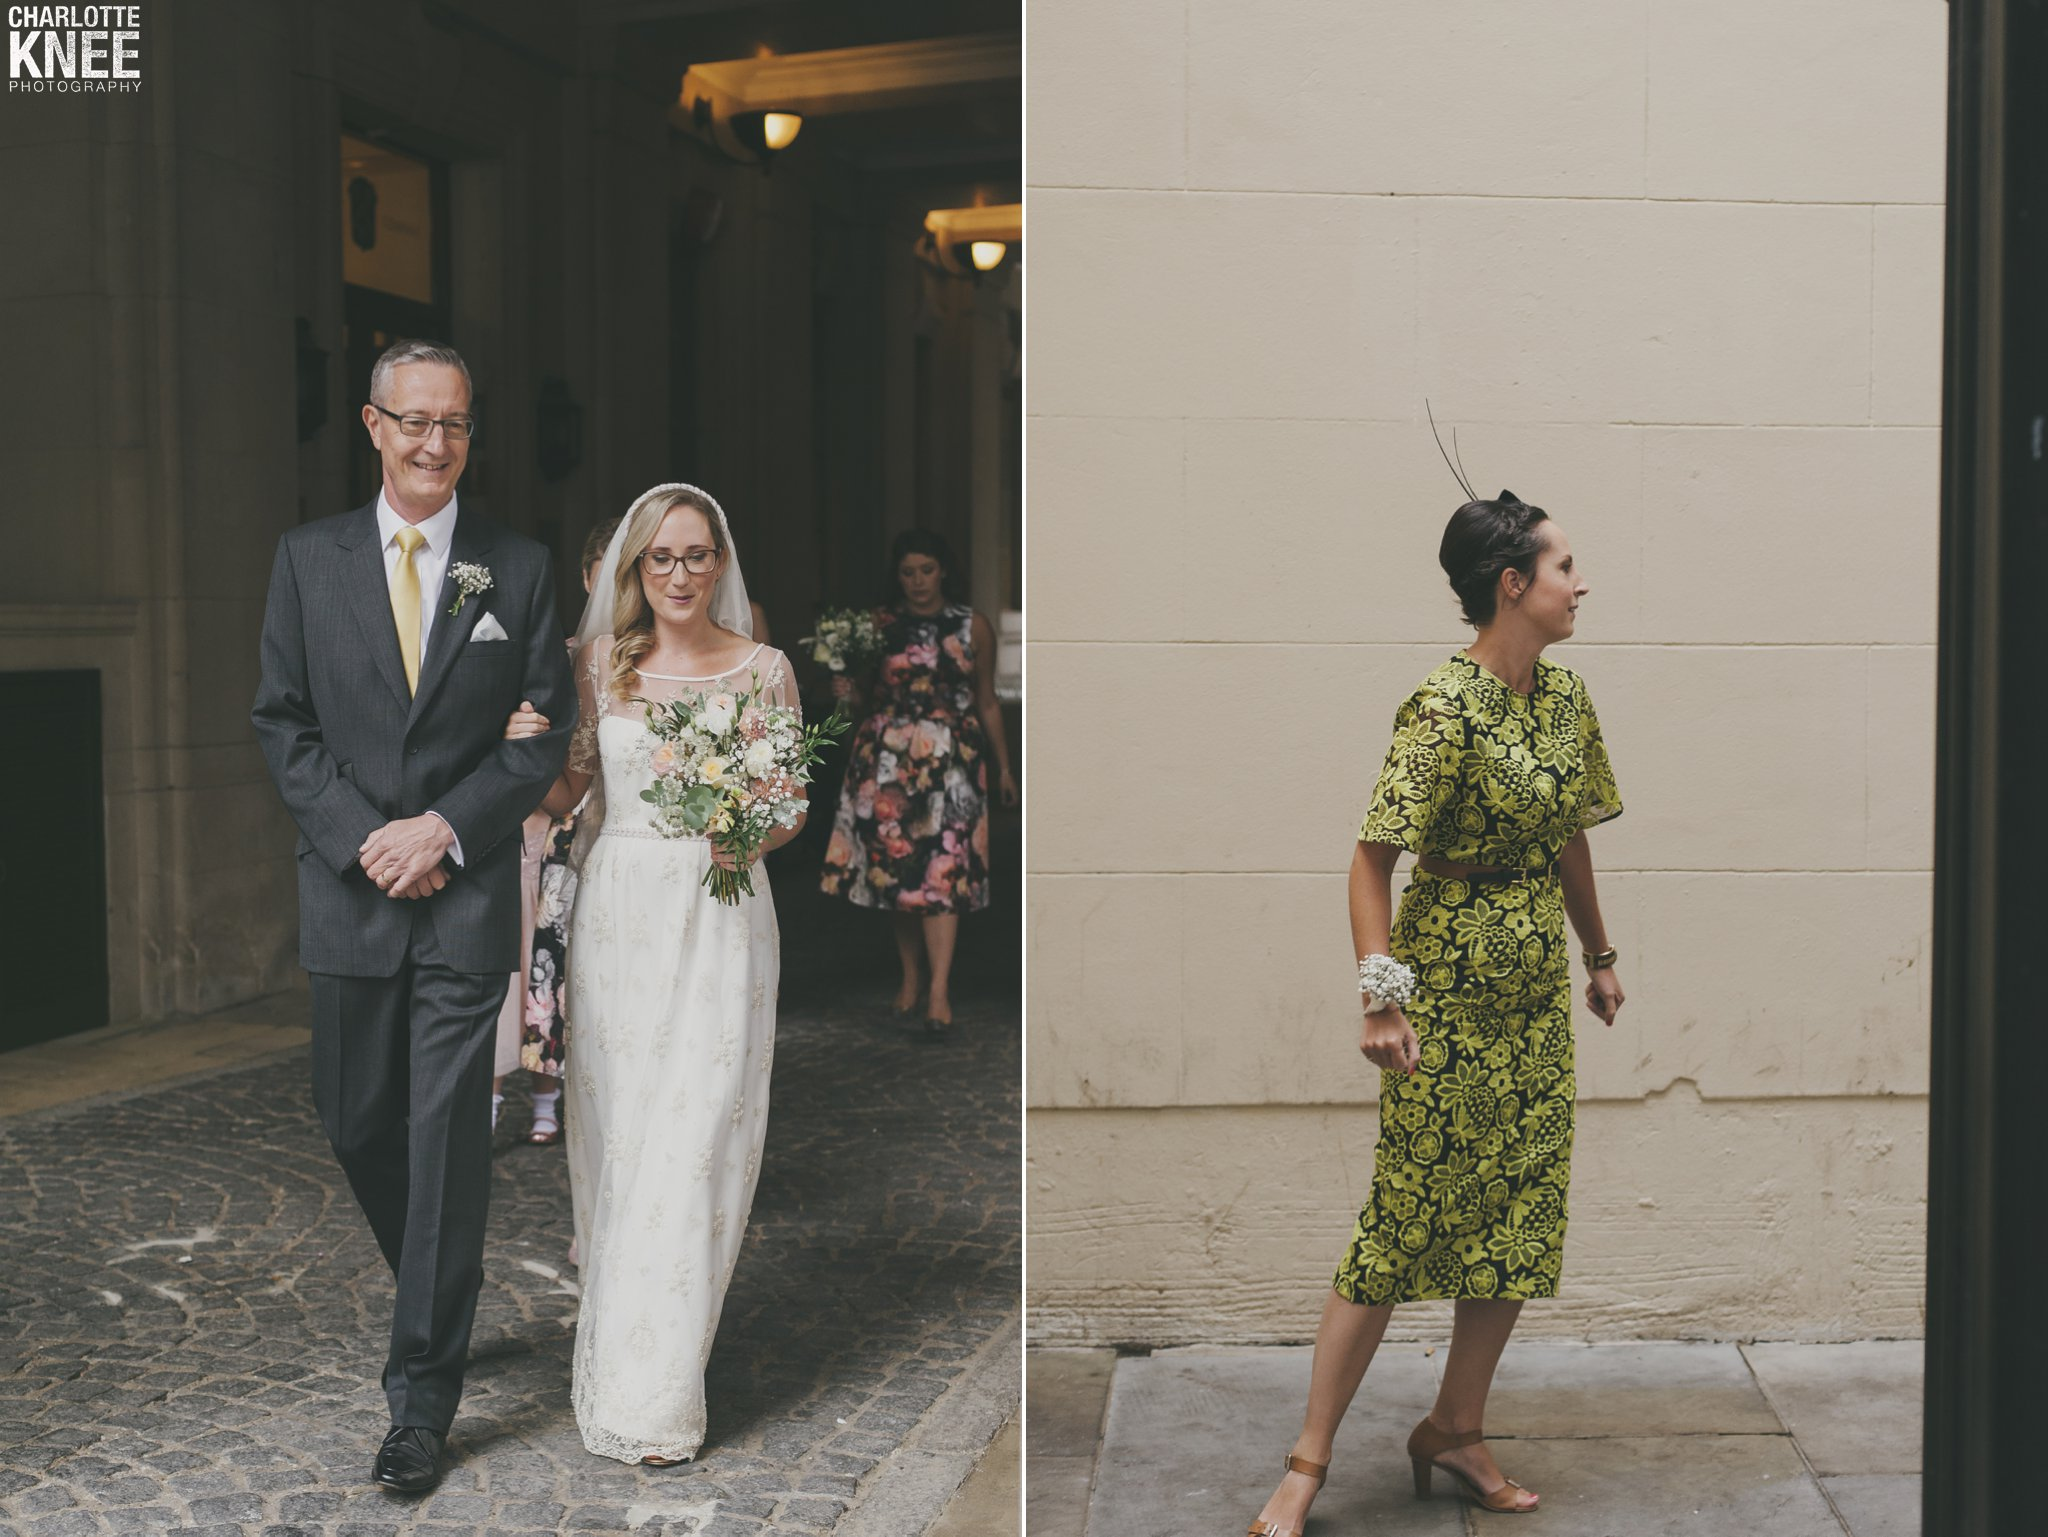 Saddlers Hall London Wedding Photography Copyright Charlotte Knee Photography_0063.jpg